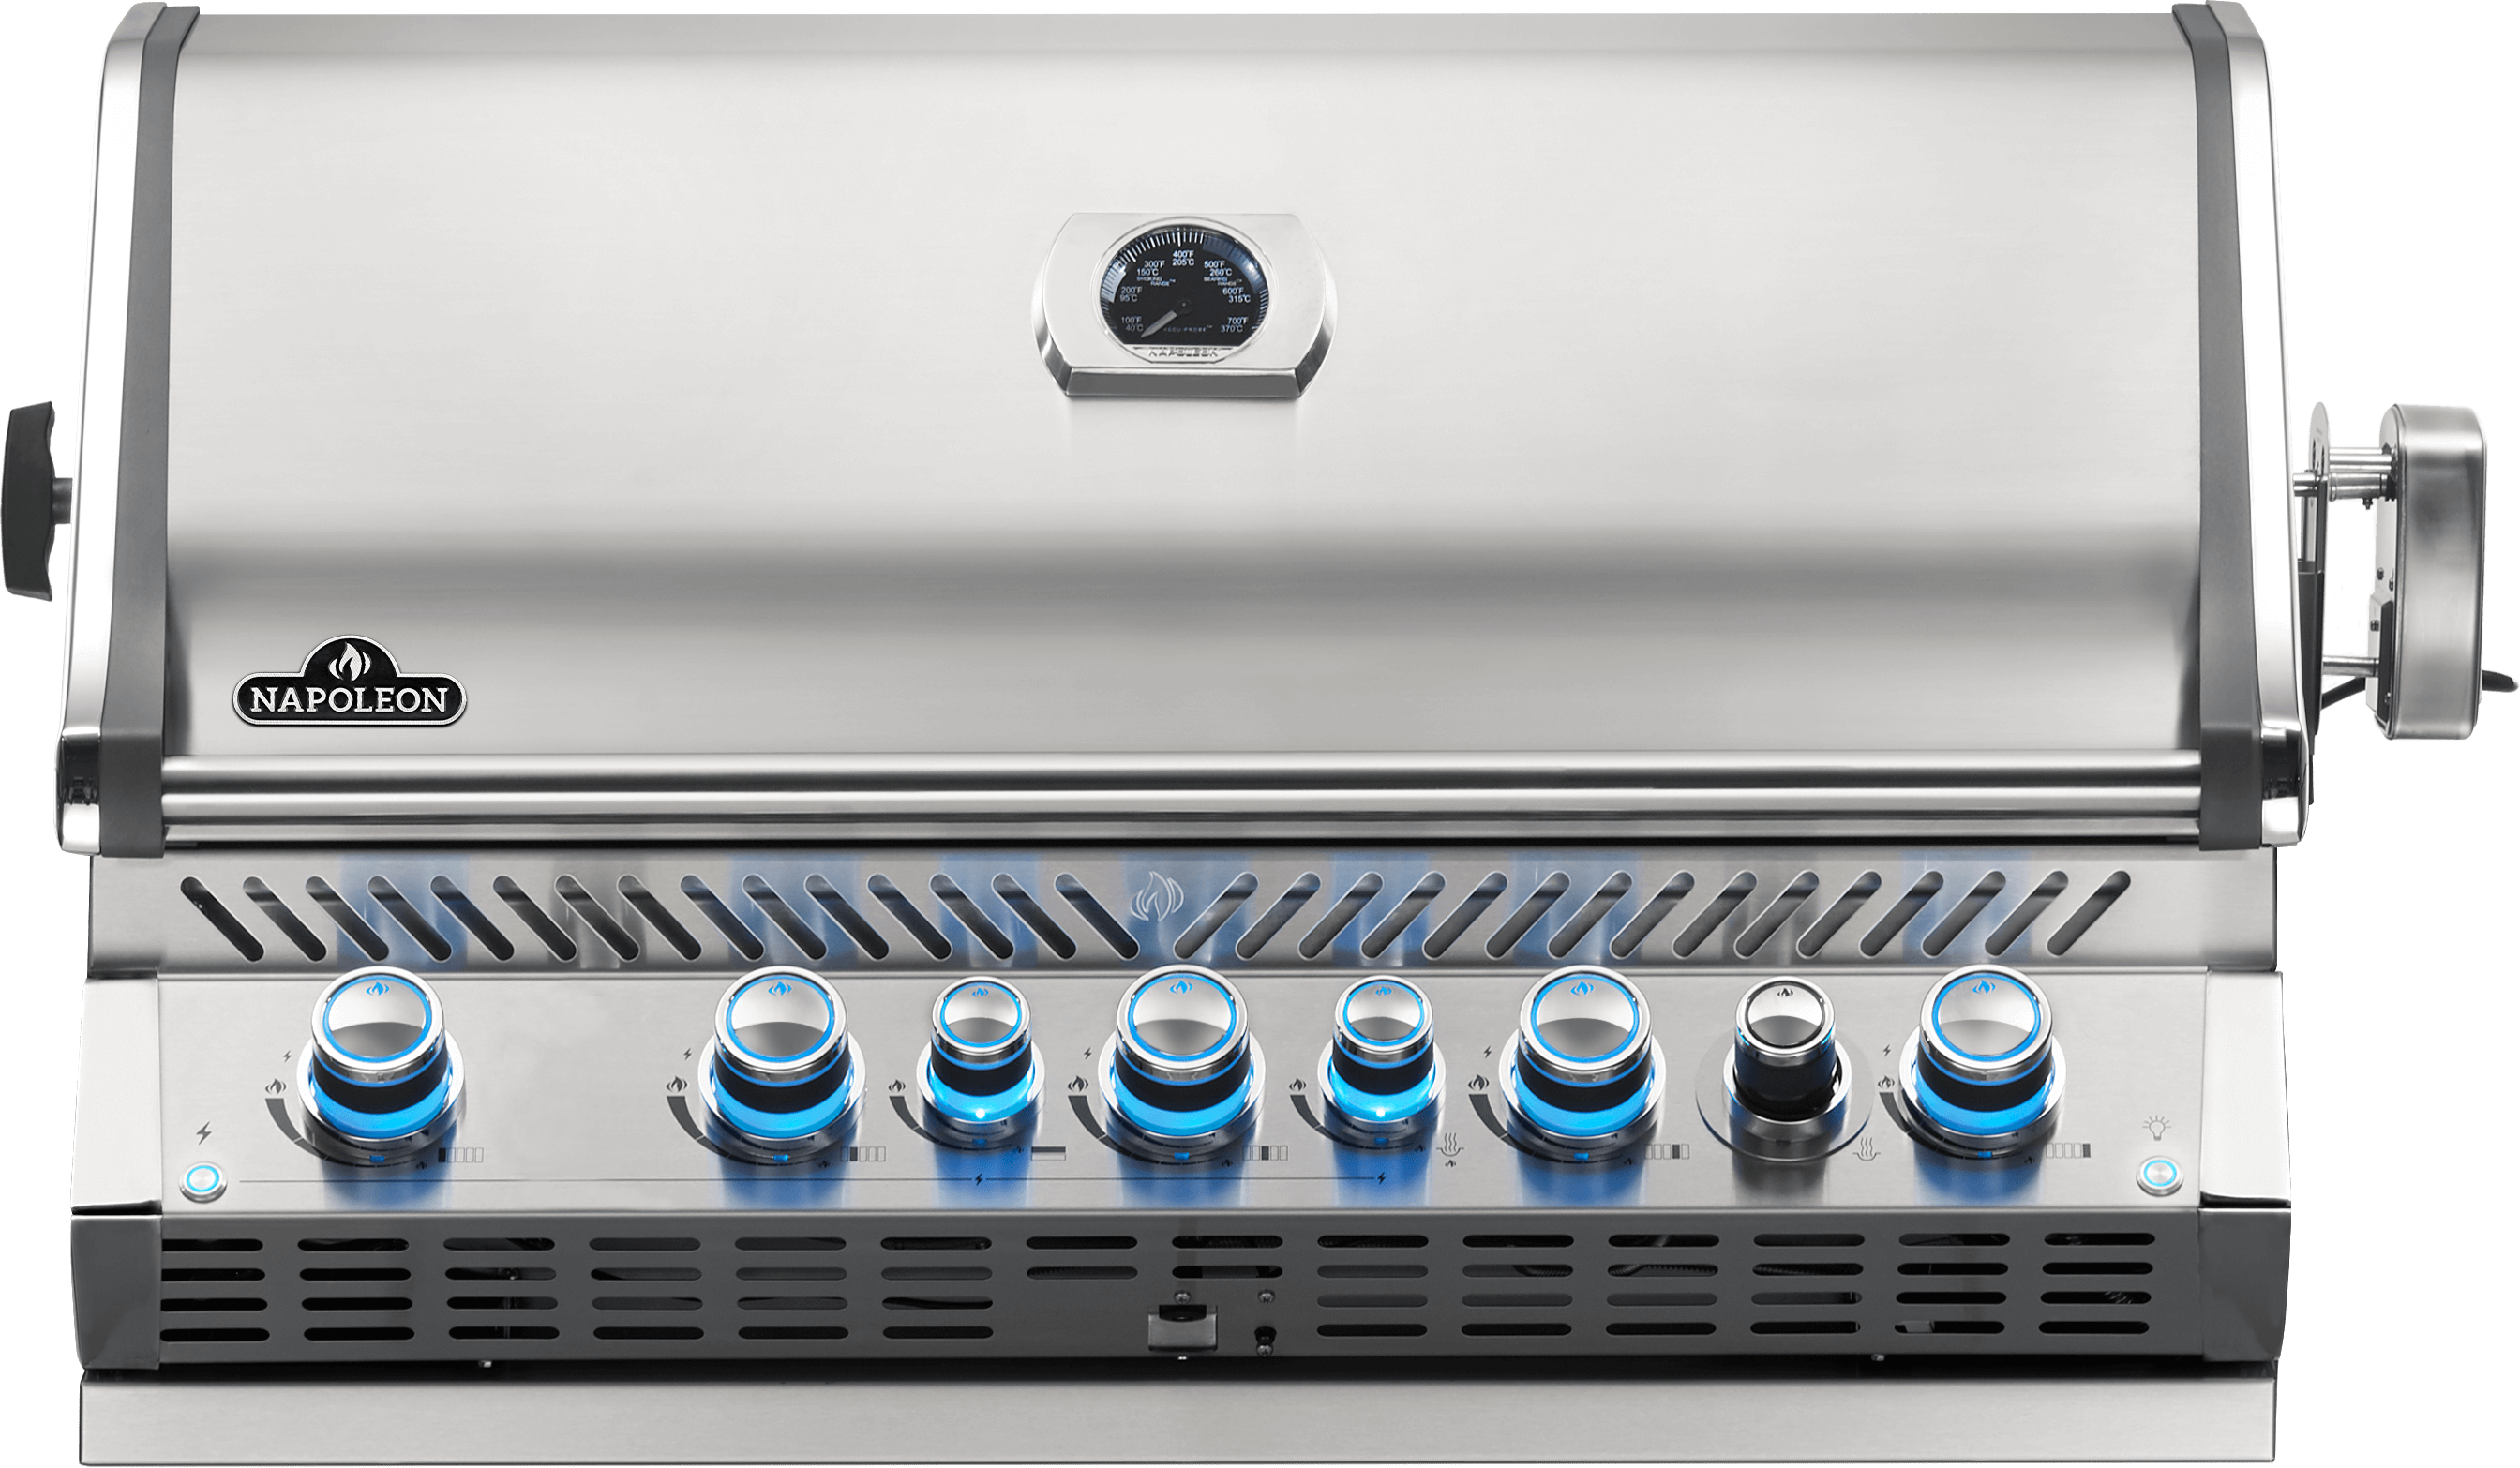 Built-in Prestige PRO™ 665 Natural Gas Grill Head with Infrared Rear Burner, Stainless Steel